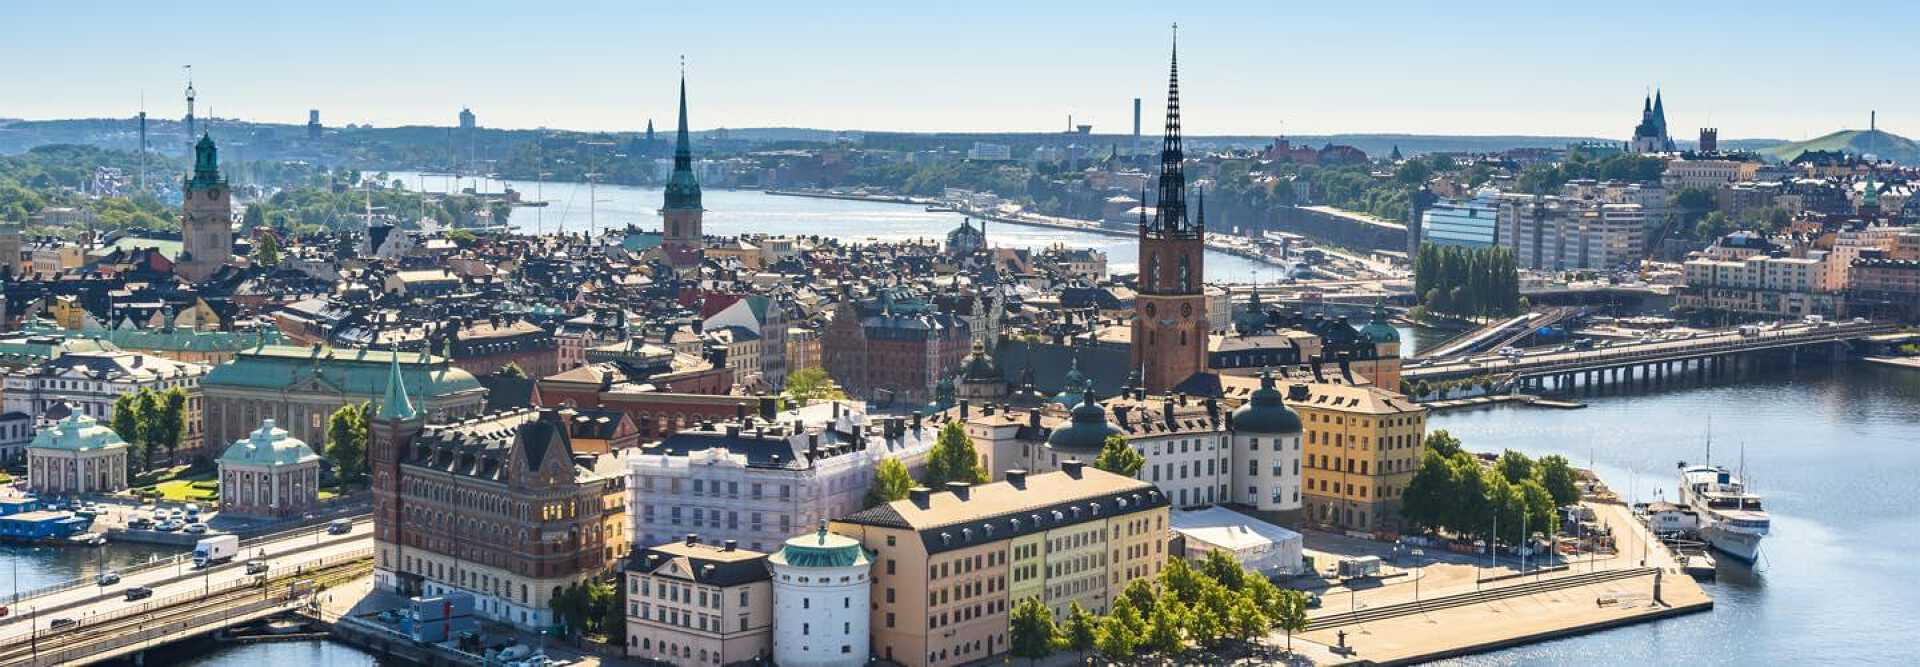 View of the old town in Stockholm in Sweden and the German church and a boat